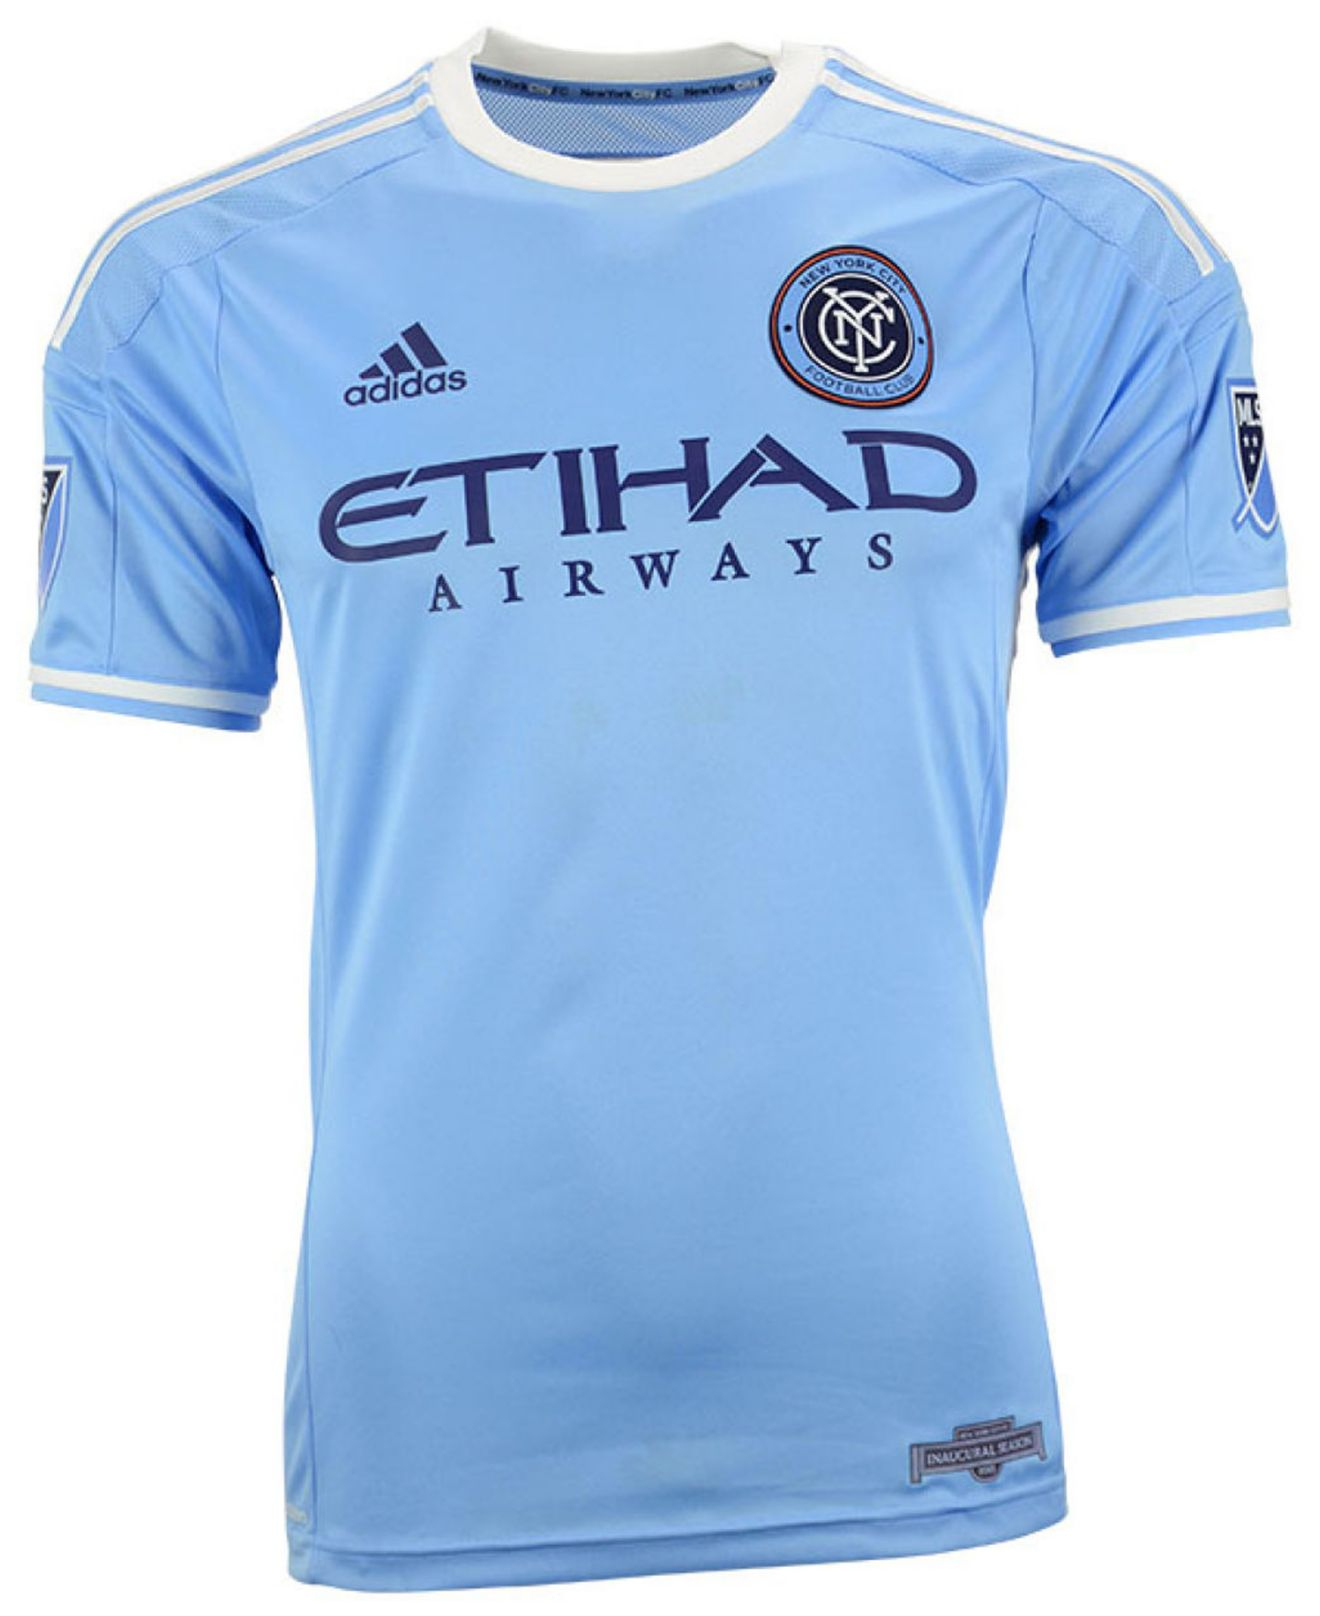 5df42da60c Lyst - Nike Adidas Men's New York City Fc Authentic Jersey in Blue ...